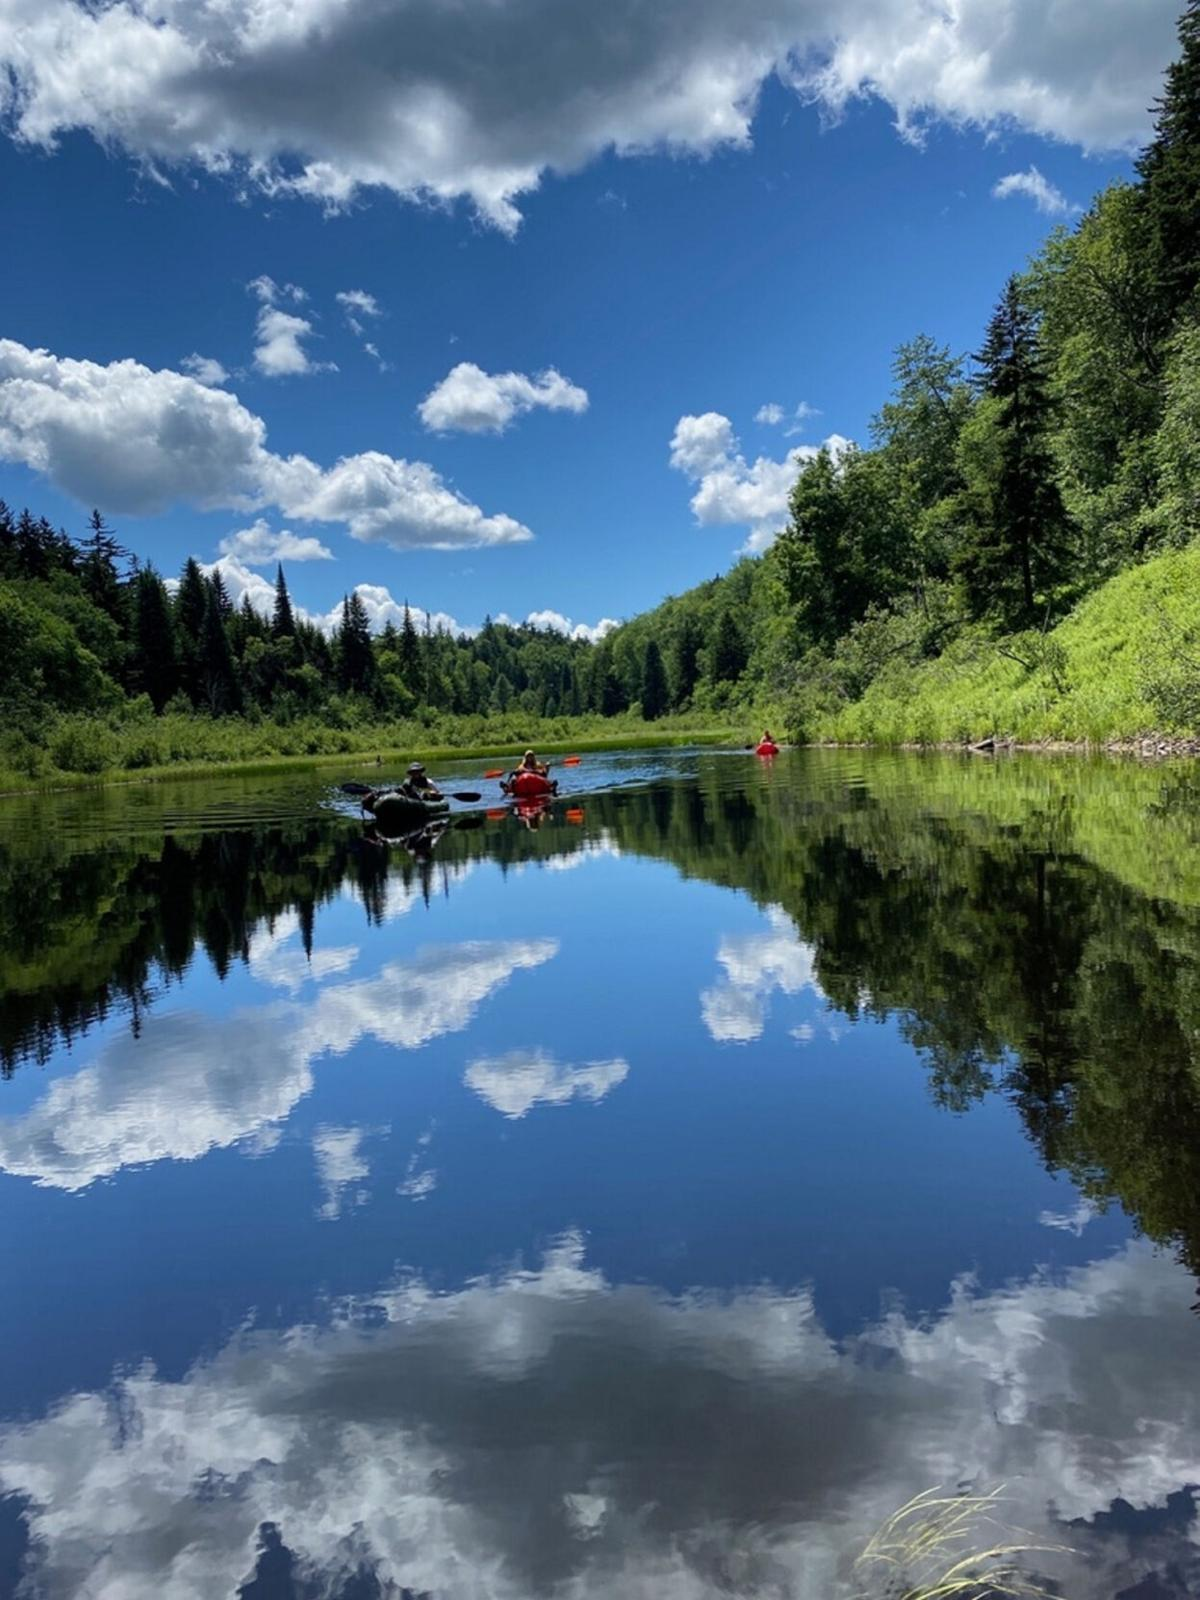 Team finds new adventure packrafting New York's old growth forest